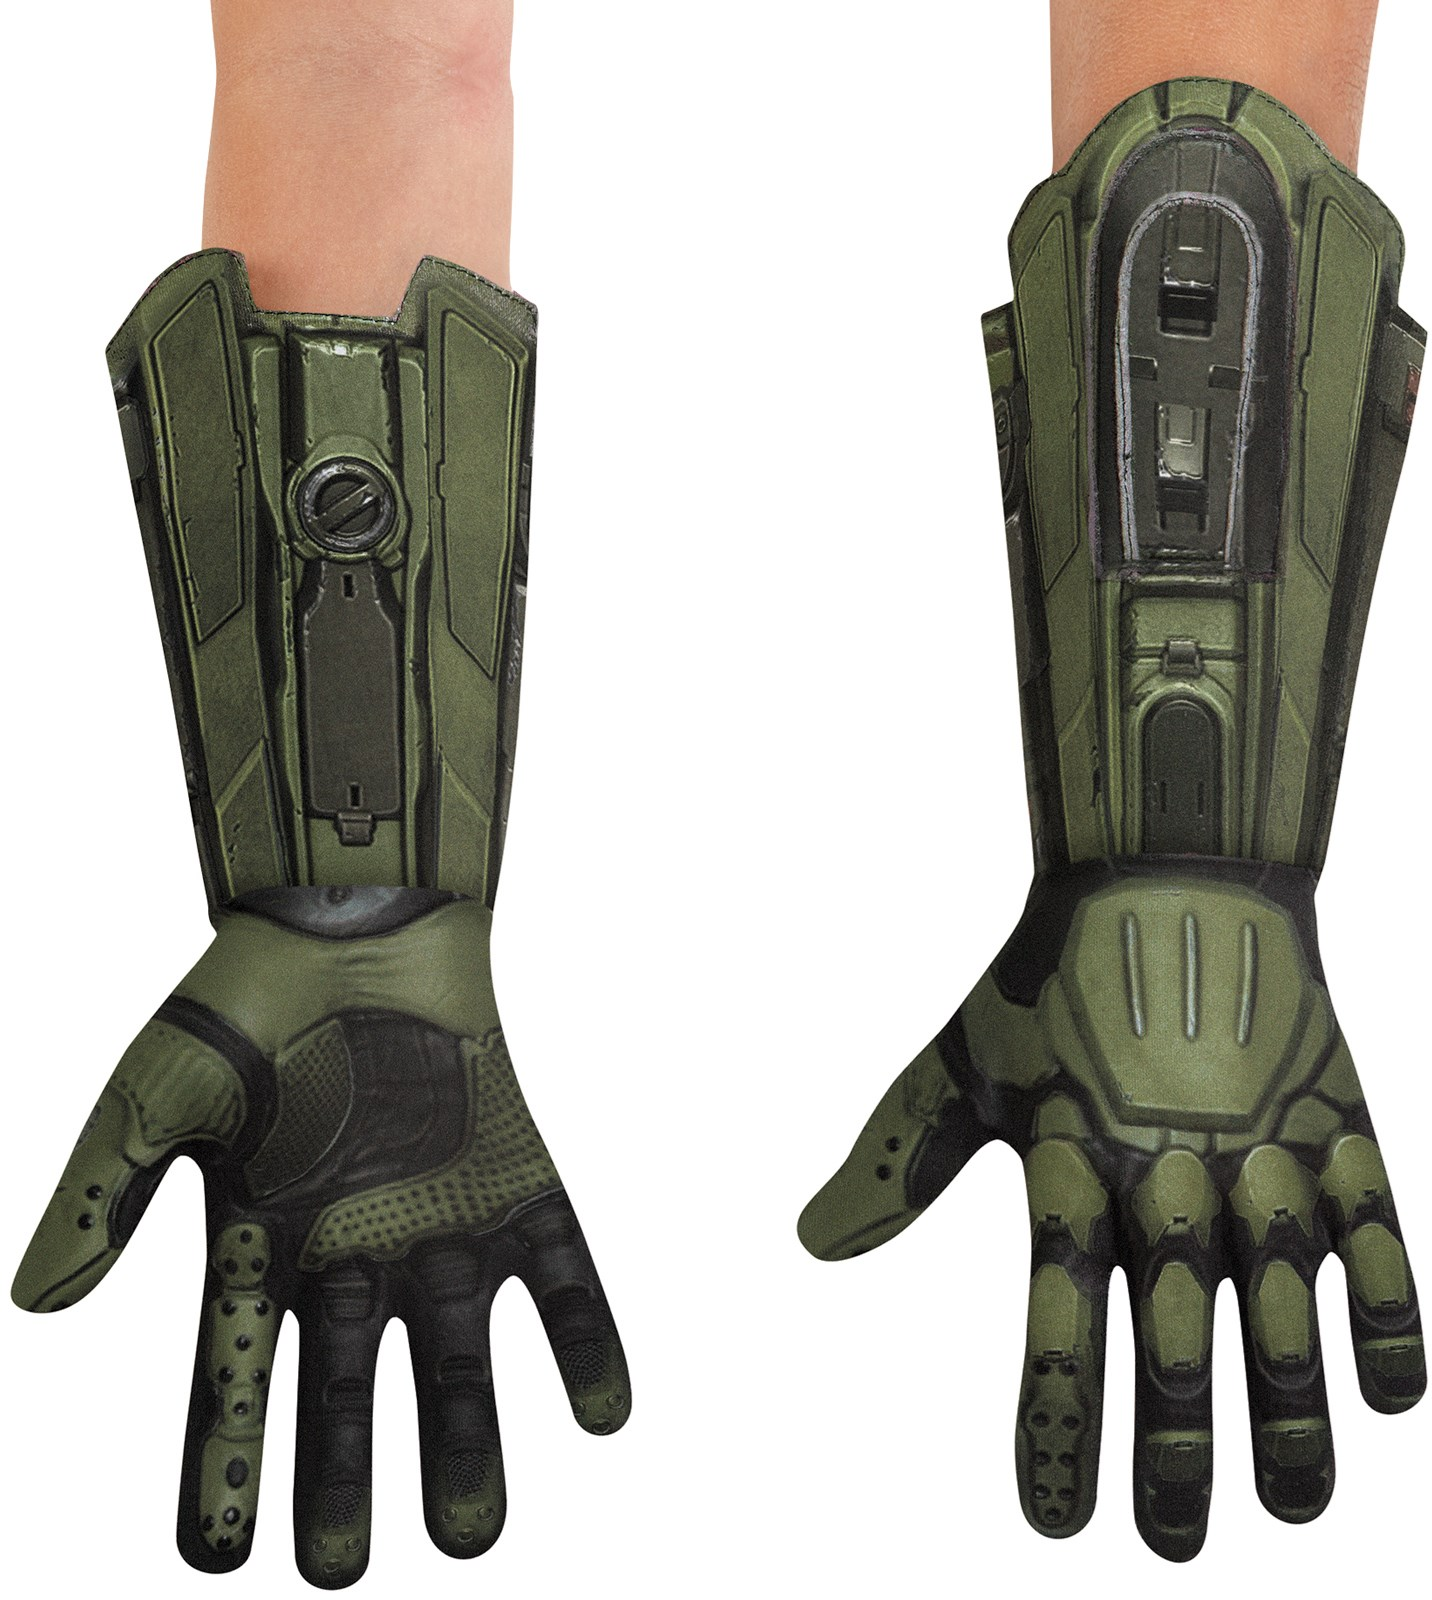 halo deluxe master chief gloves for kids buycostumes com